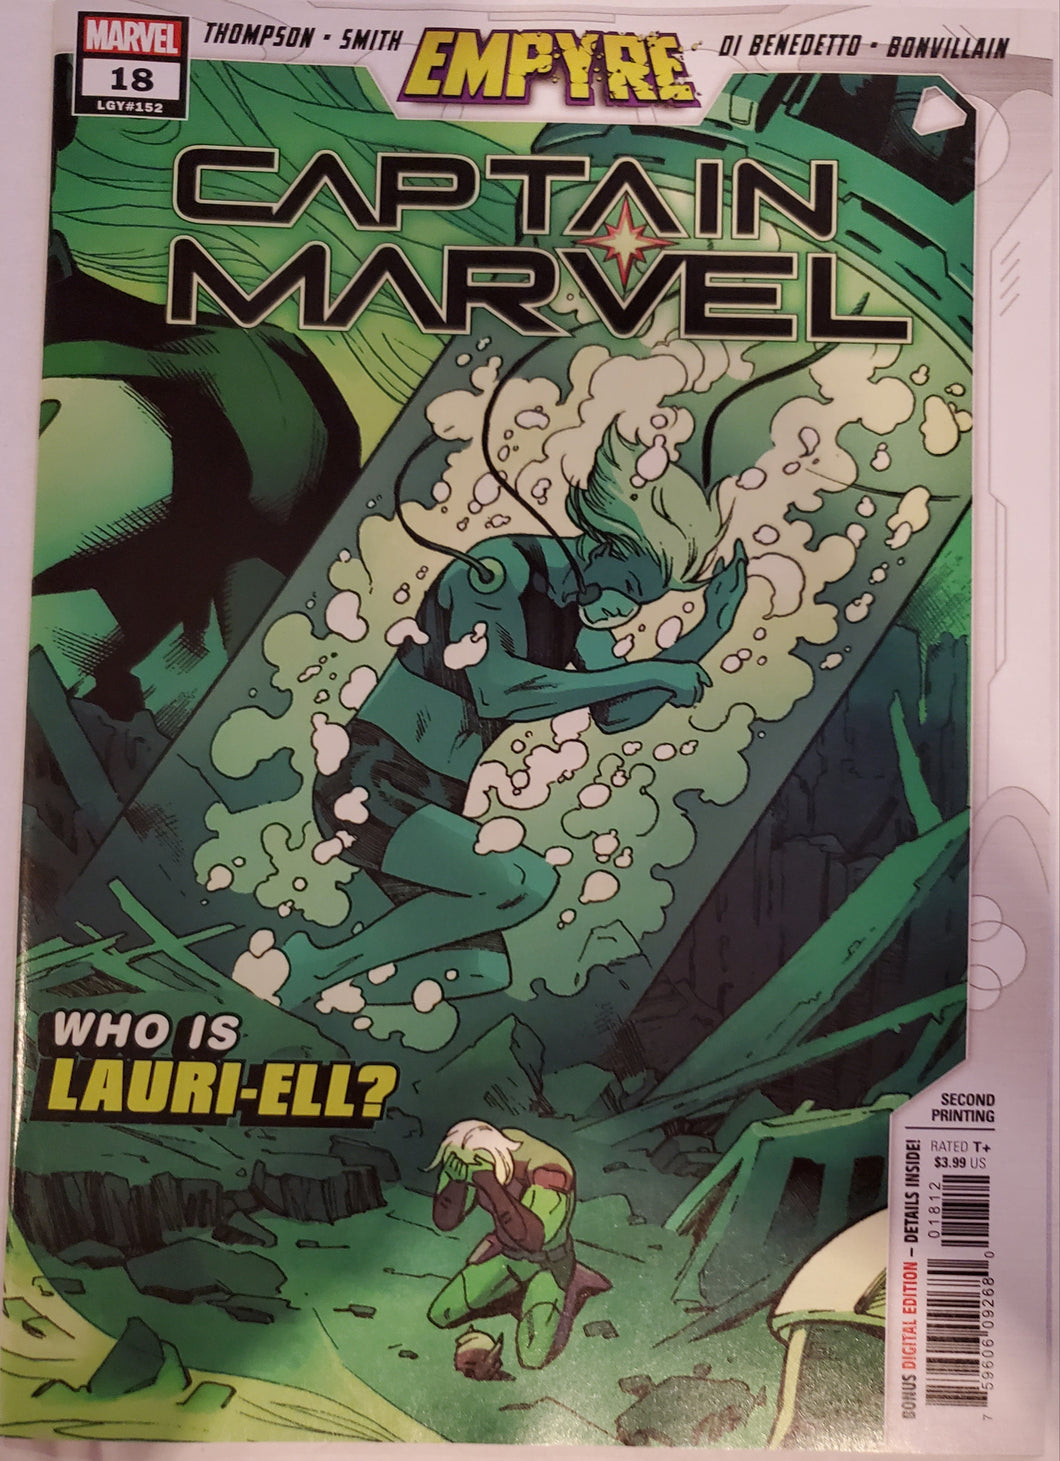 MARVEL COMICS CAPTAIN MARVEL 18 2nd PRINT VARIANT COVER 1ST APPEARANCE LAURI-ELL